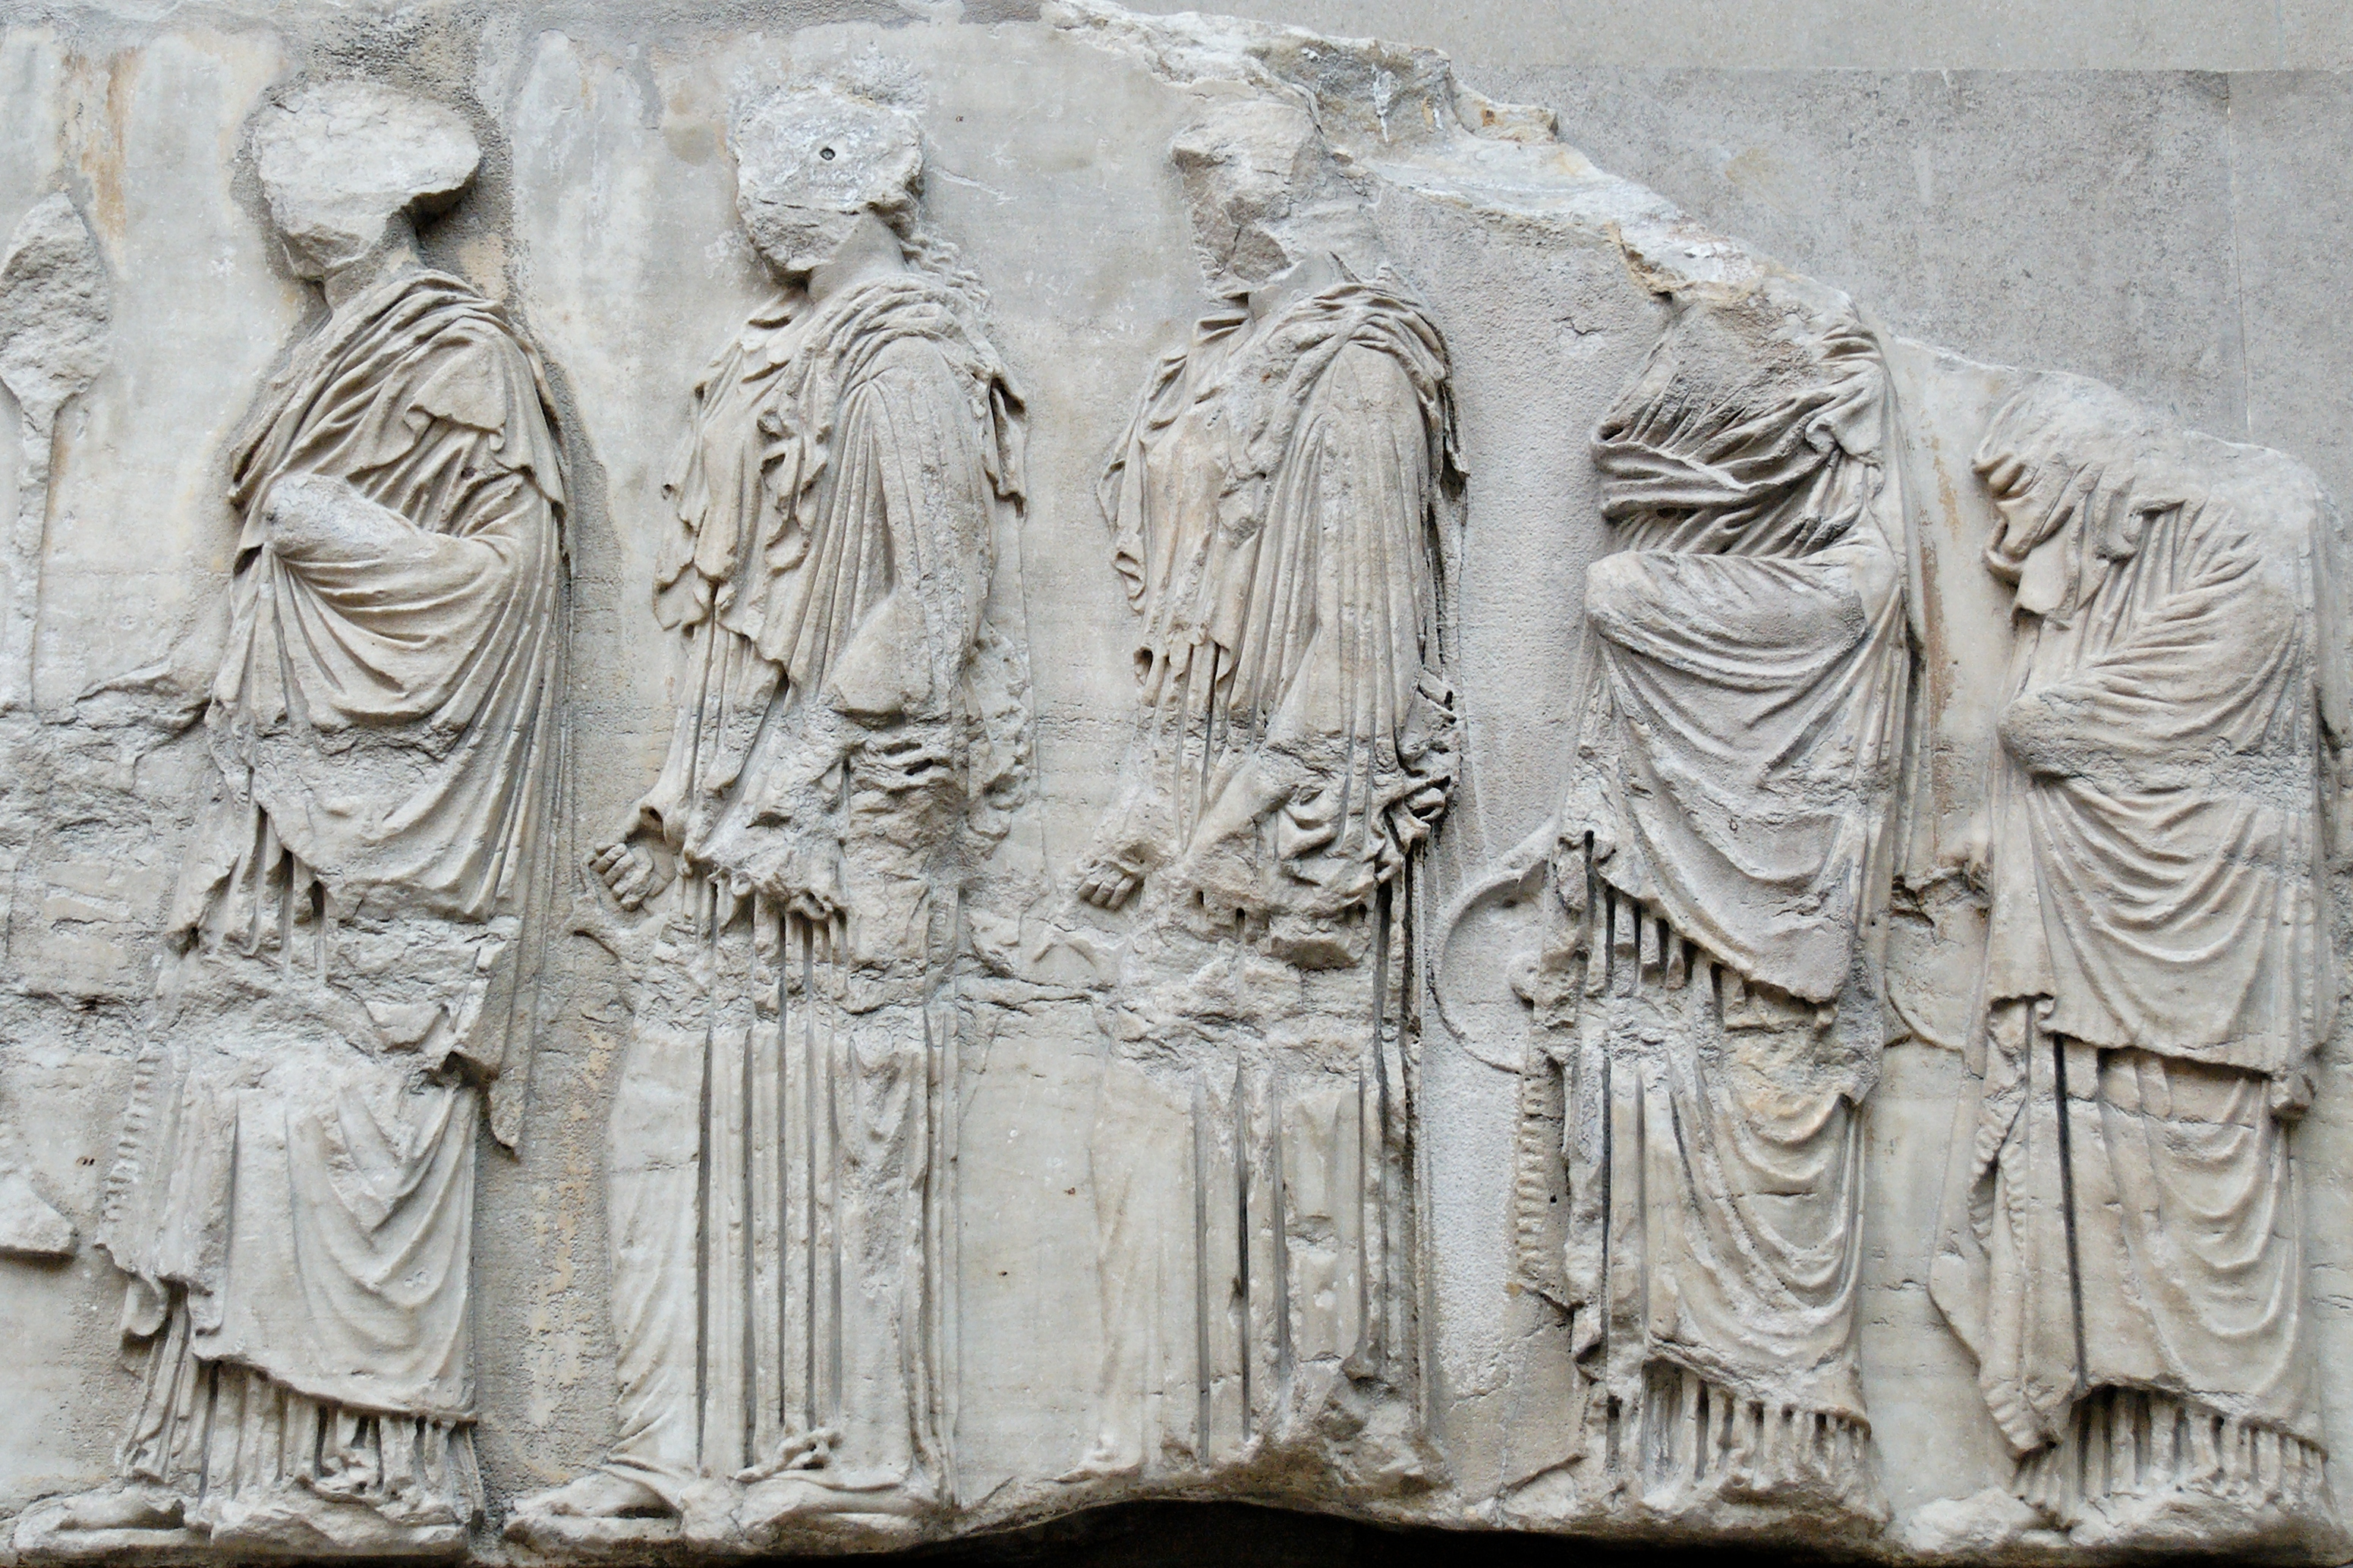 File:East frieze 57-61 Parthenon BM.jpg - Wikimedia Commons